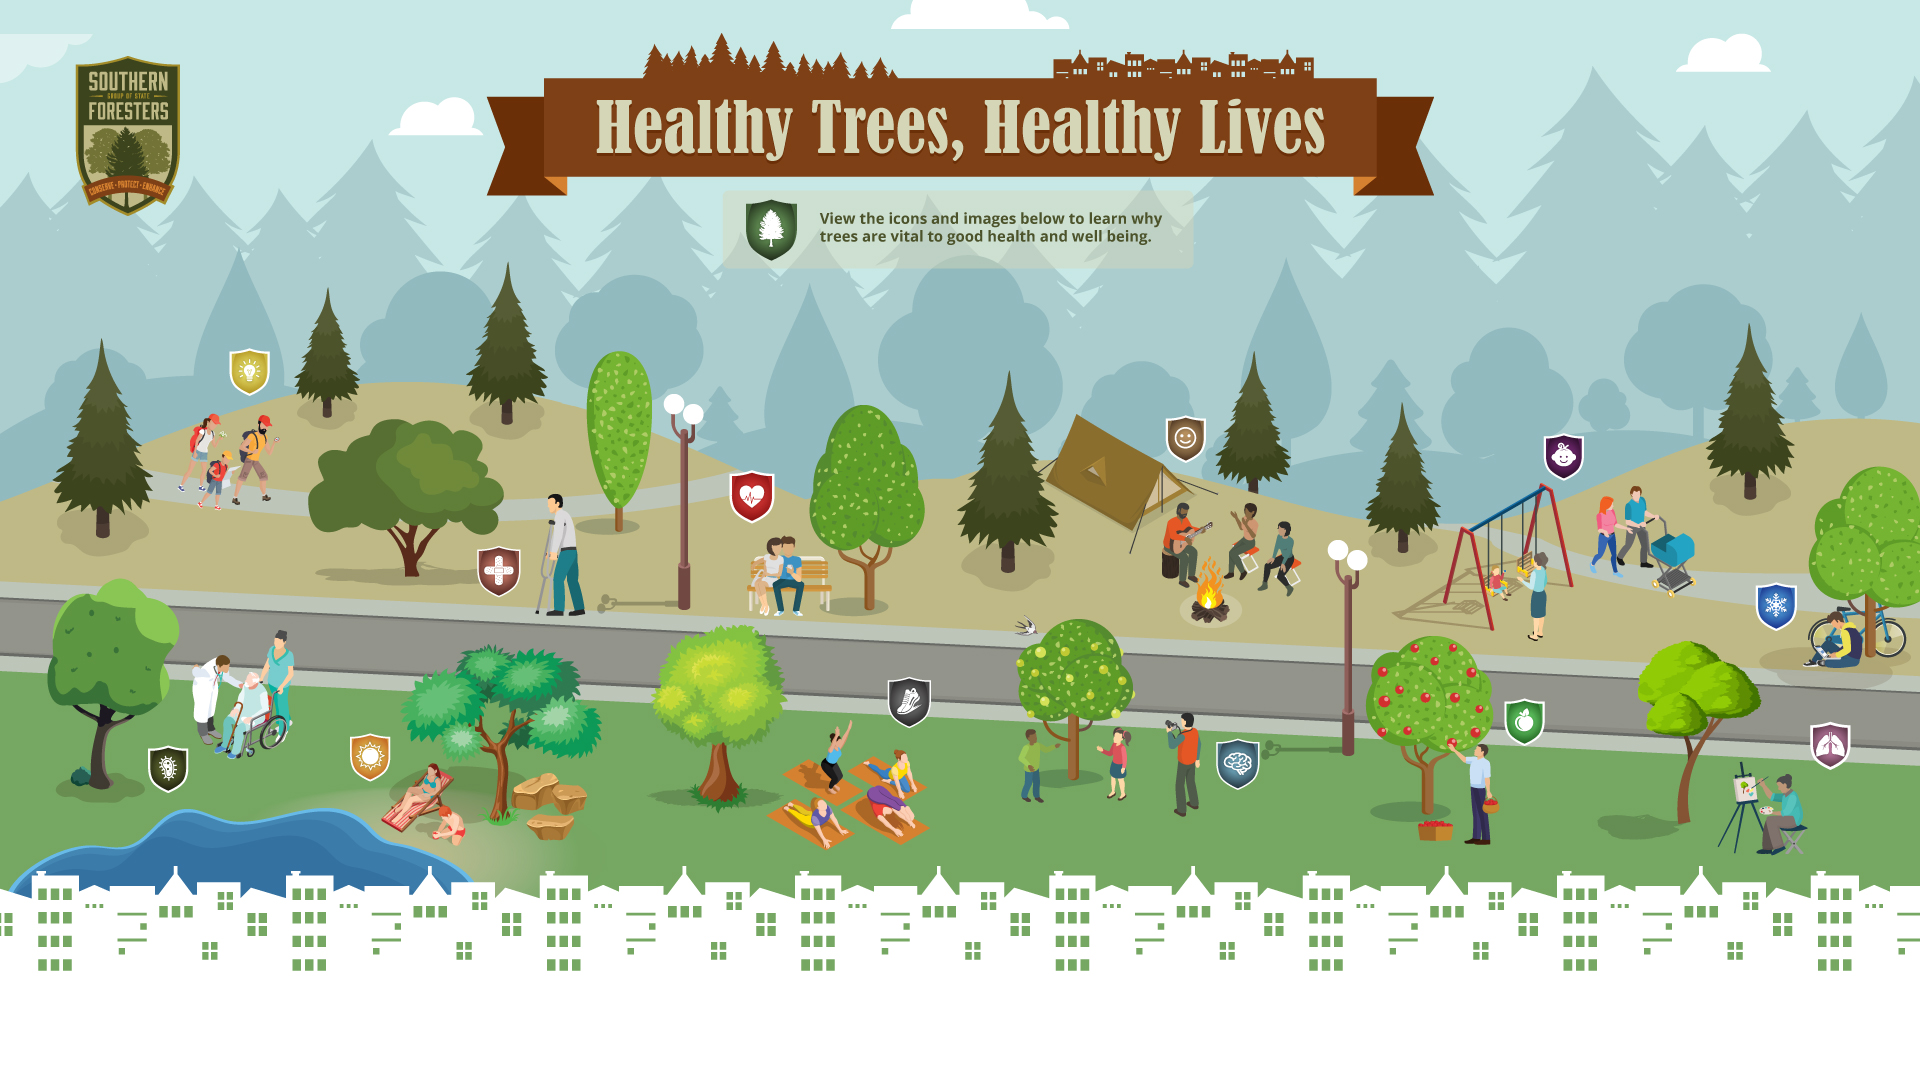 Healthy Trees, Healthy Lives